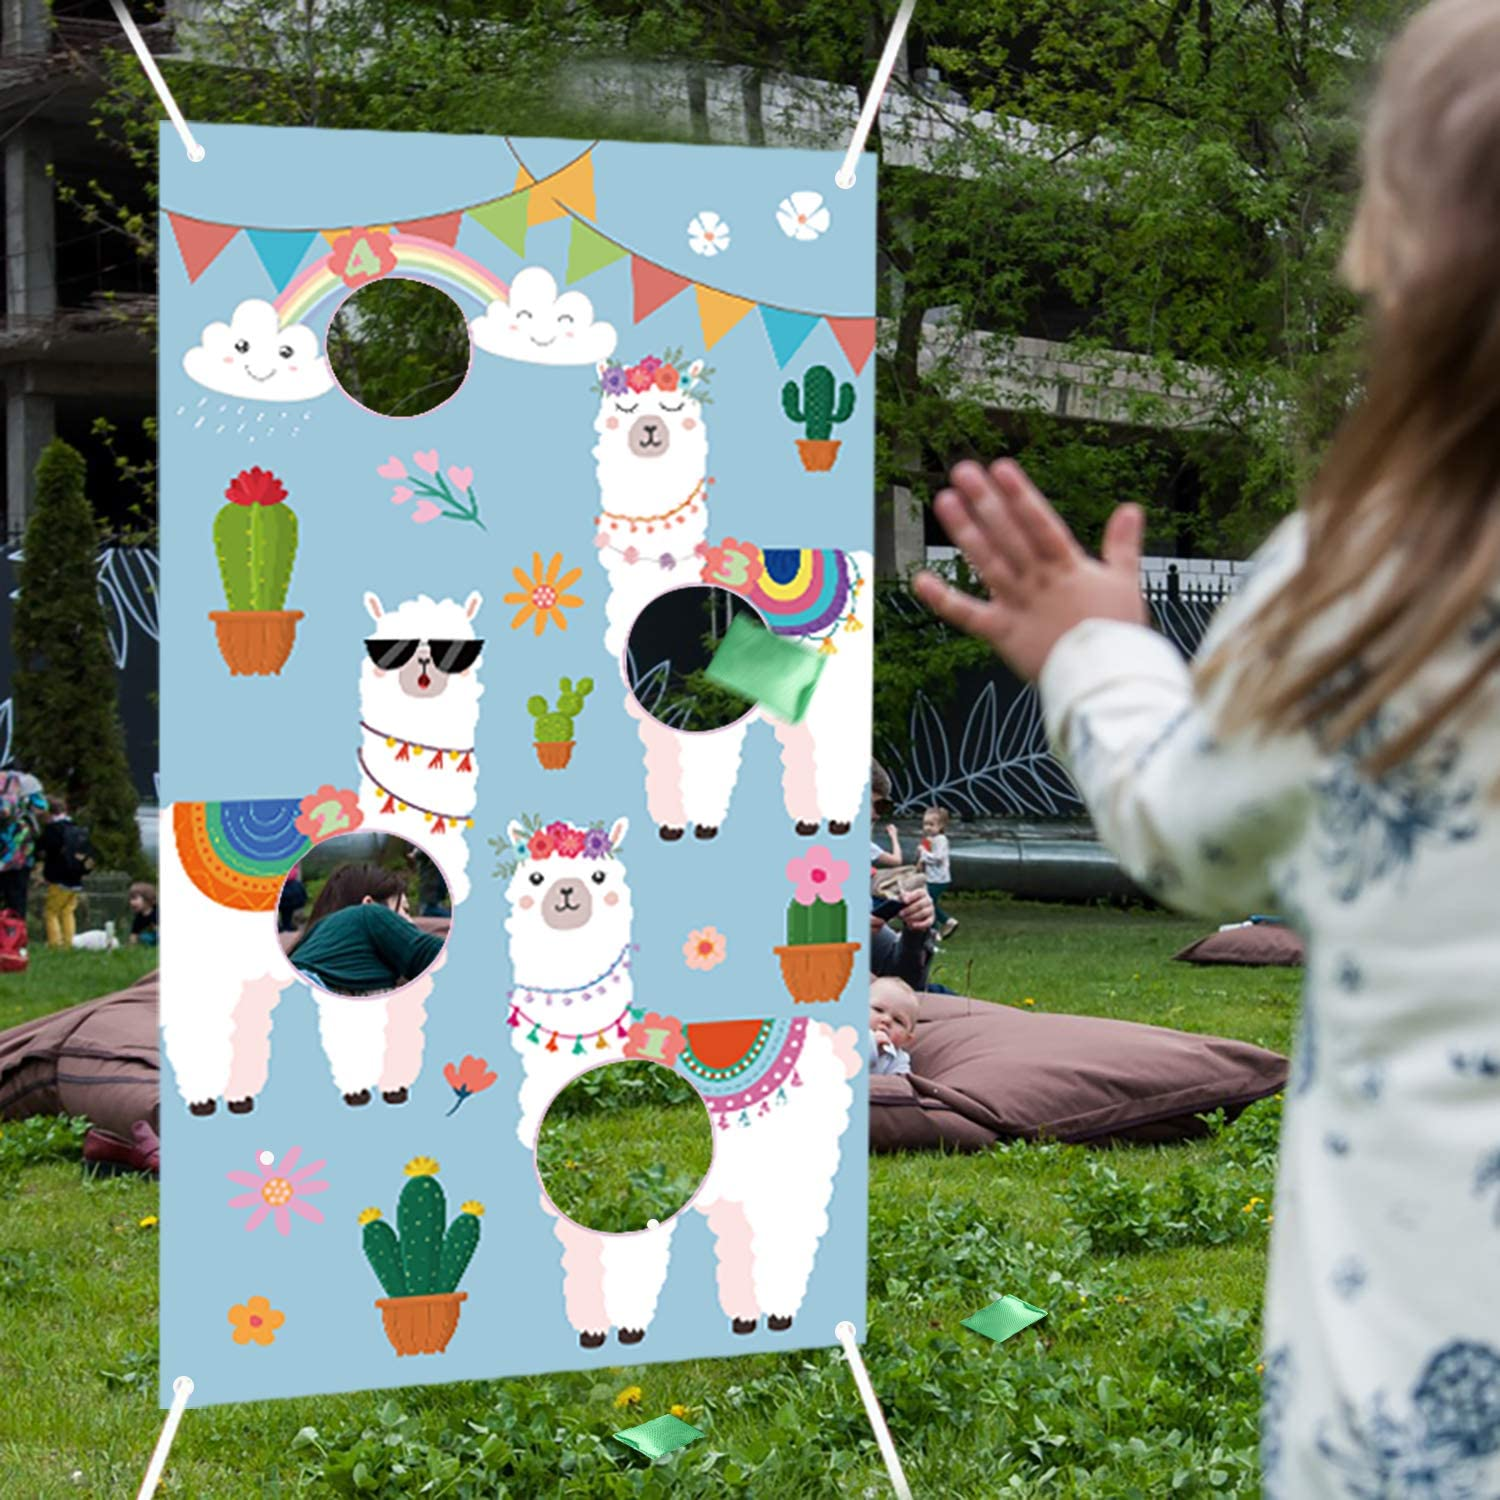 WATINC Alpaca Toss Games with 3 Bean Bags, Llama Carnival Party Game for Kids and Adults, Alpaca Banner Decoration for Birthday Party, Outdoor Yard Favors, All Ages Activity, Llama Themed Fun Game